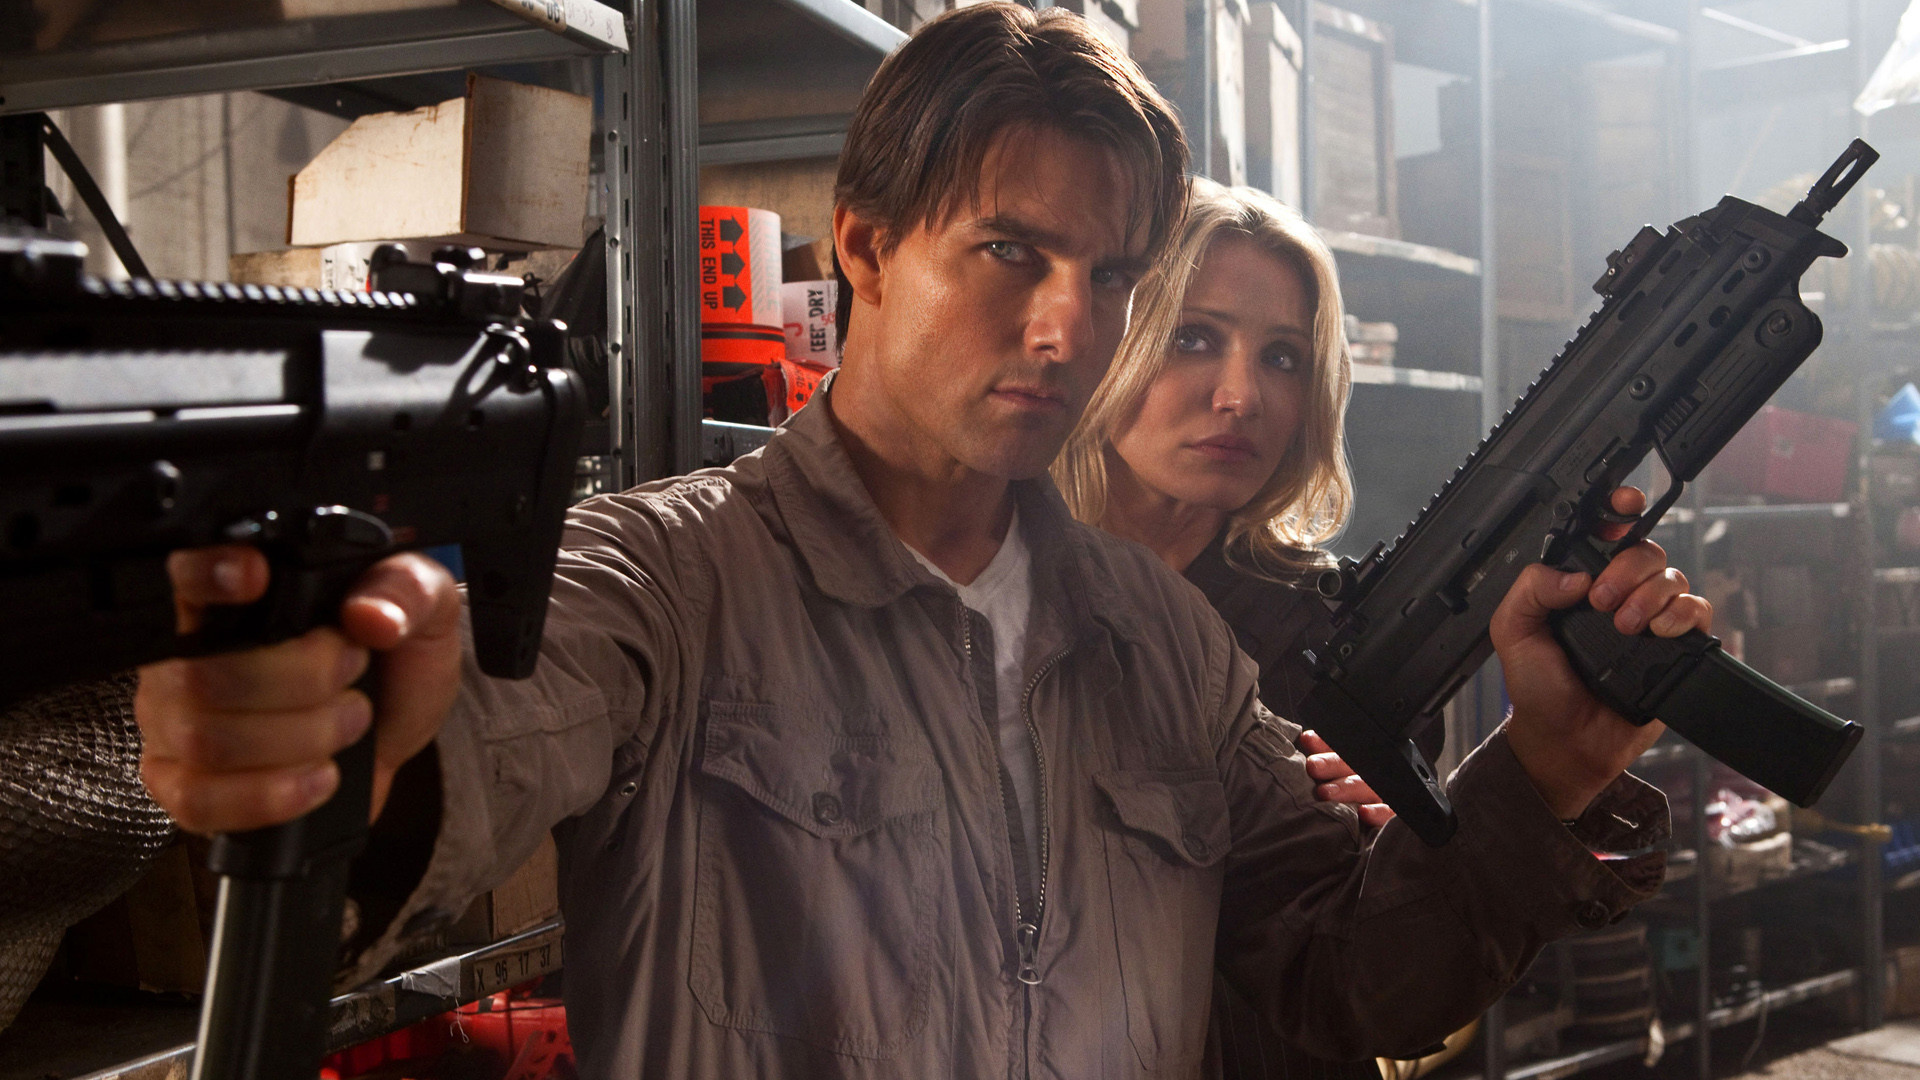 tom cruise dans Night and day (2010) de James Mangold